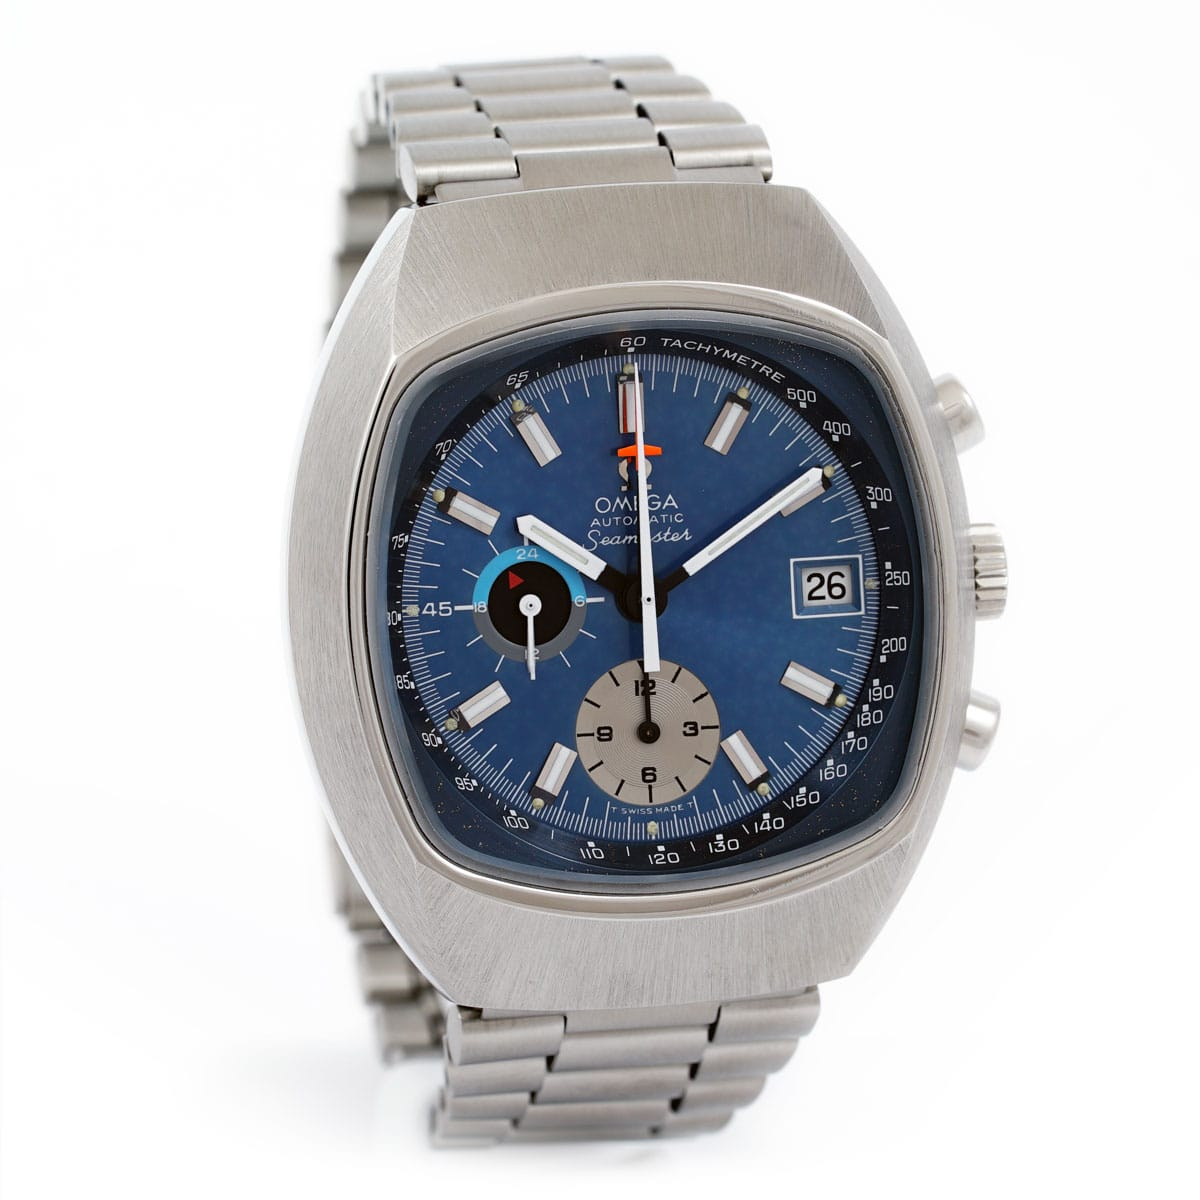 110457-Omega-Seamaster-so-called-JEDI-montres-occasion-seconde-main-lionel-meylan-vevey